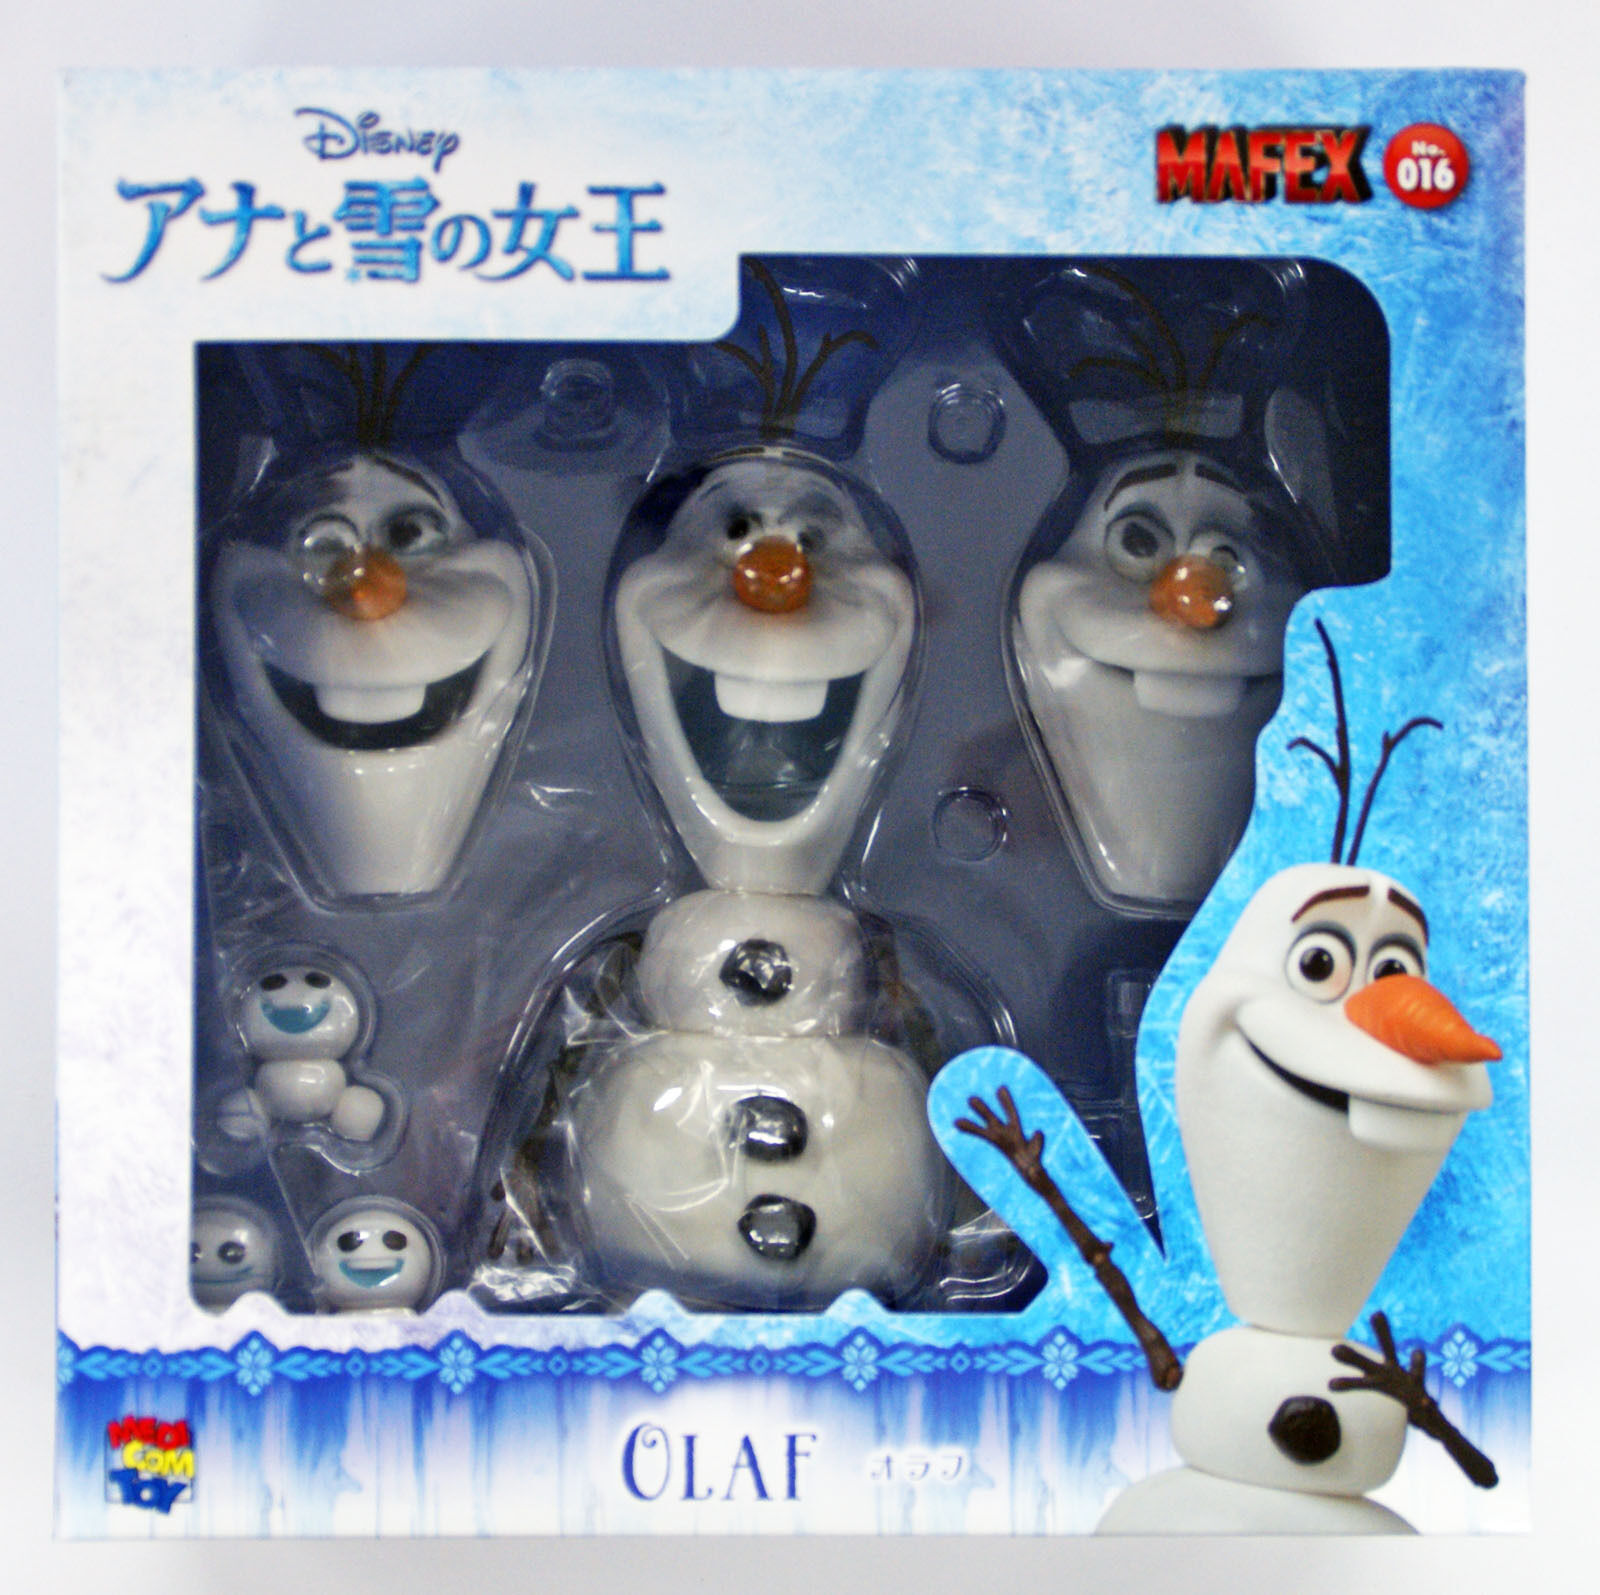 Medicom MAFEX 026 Olaf and Snowgies from Frozen Figure 4530956470269